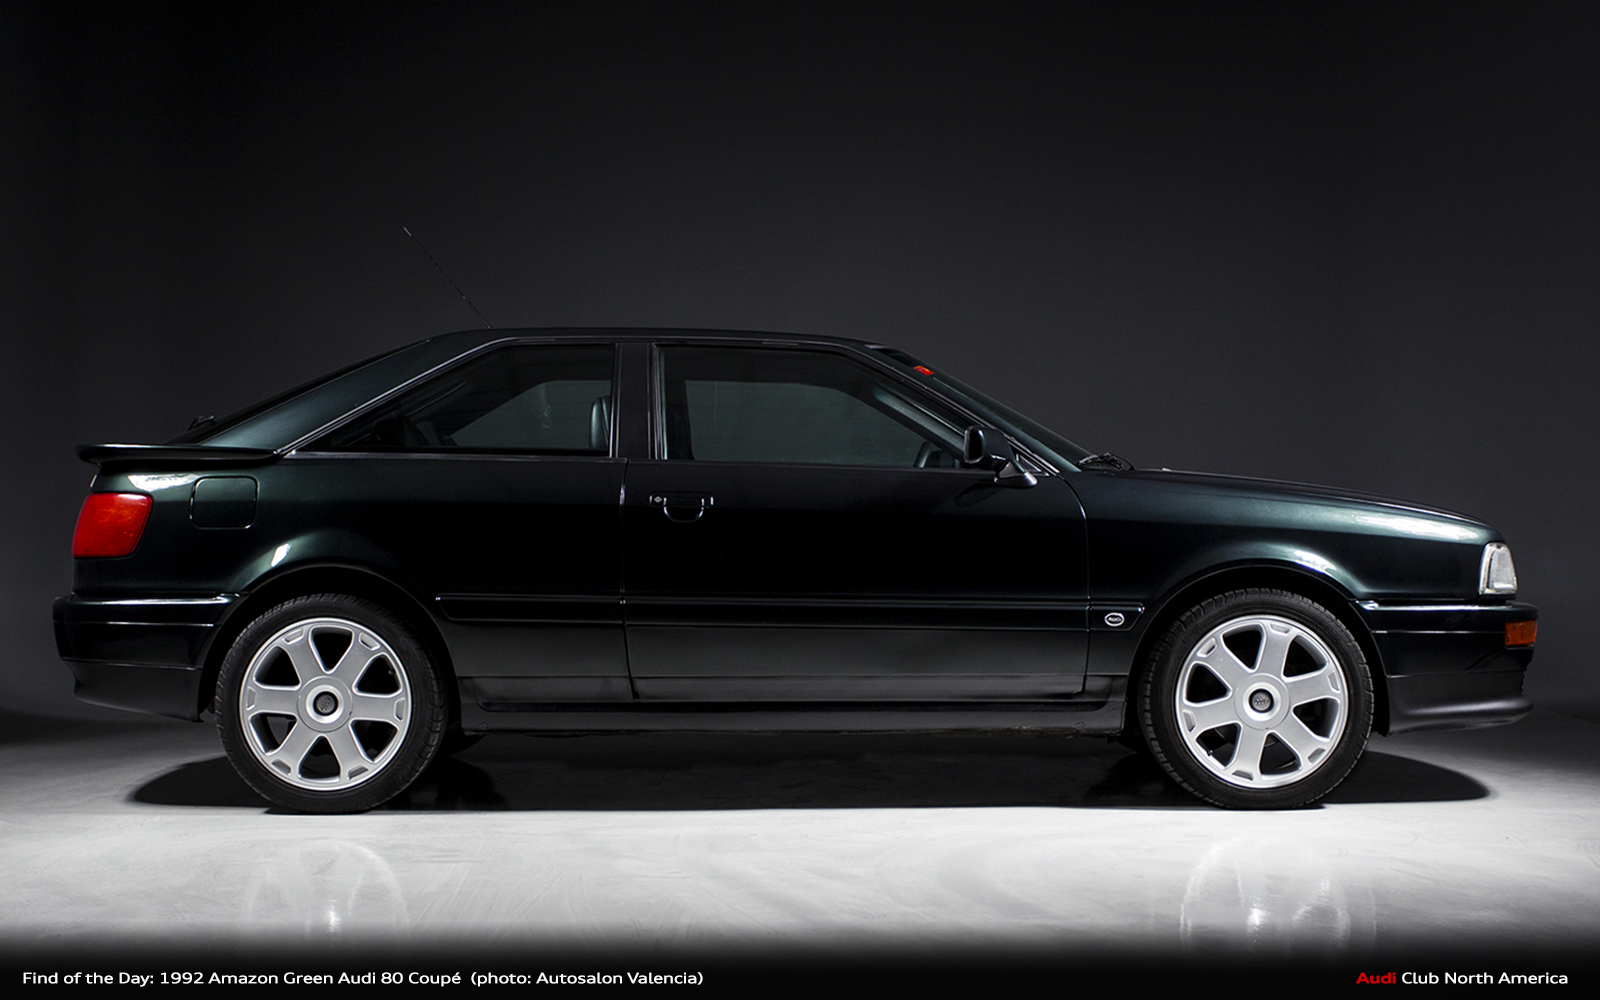 Find of the Day: 1992 Amazon Green Audi 80 Coupé